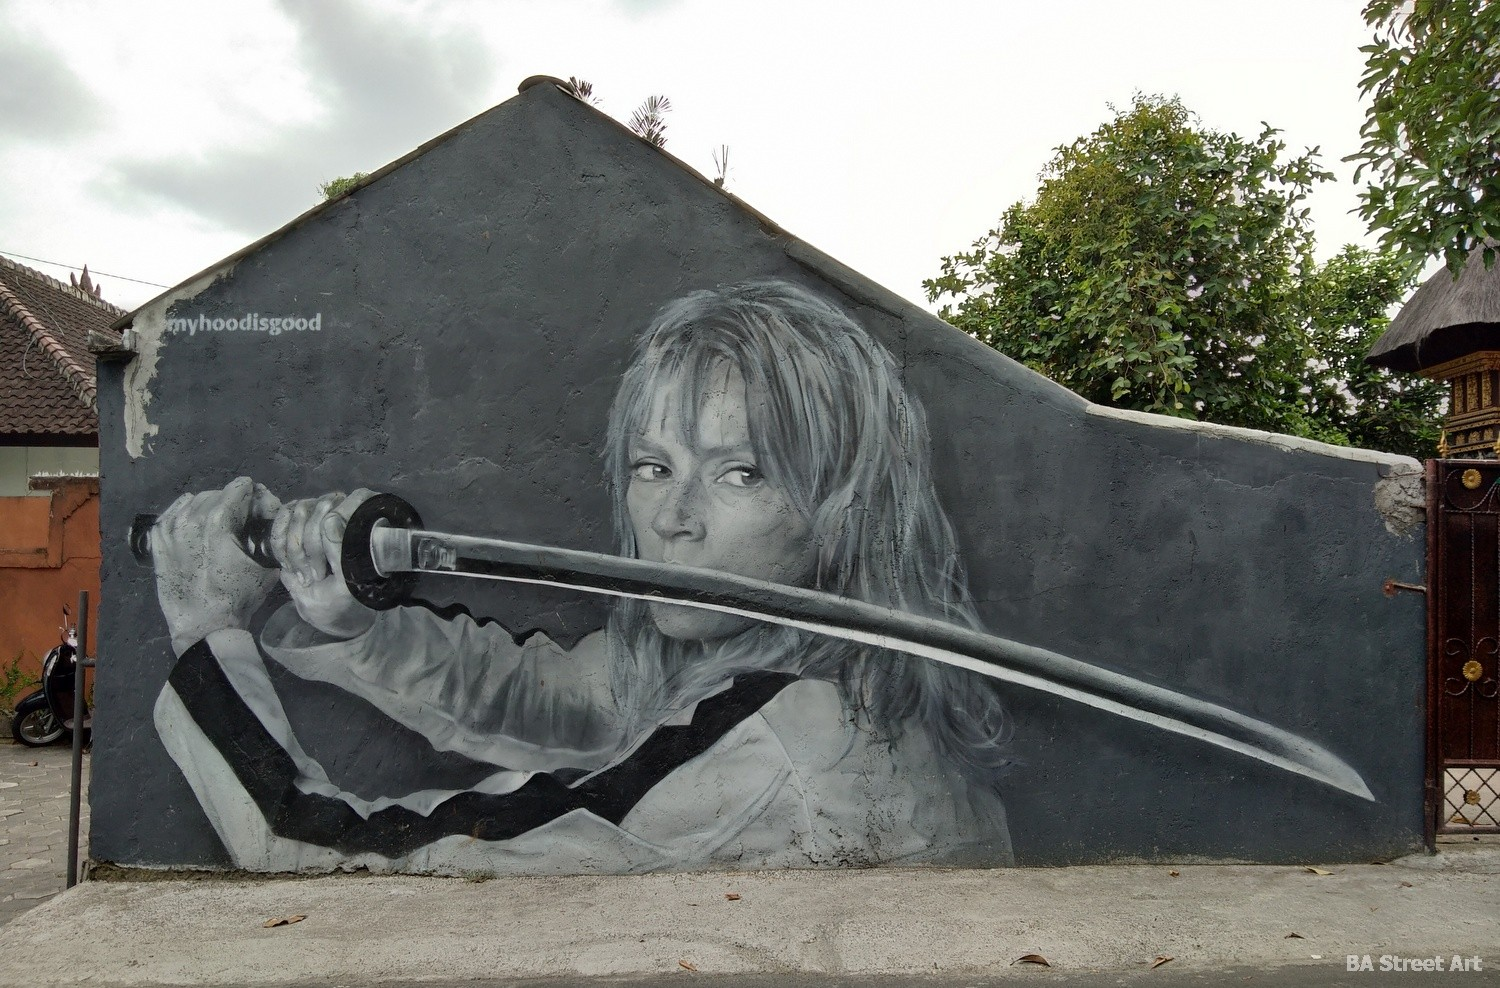 uma thurman mural kill bill canggu bali street art graffiti my hood is good artist buenosairesstreetart.com